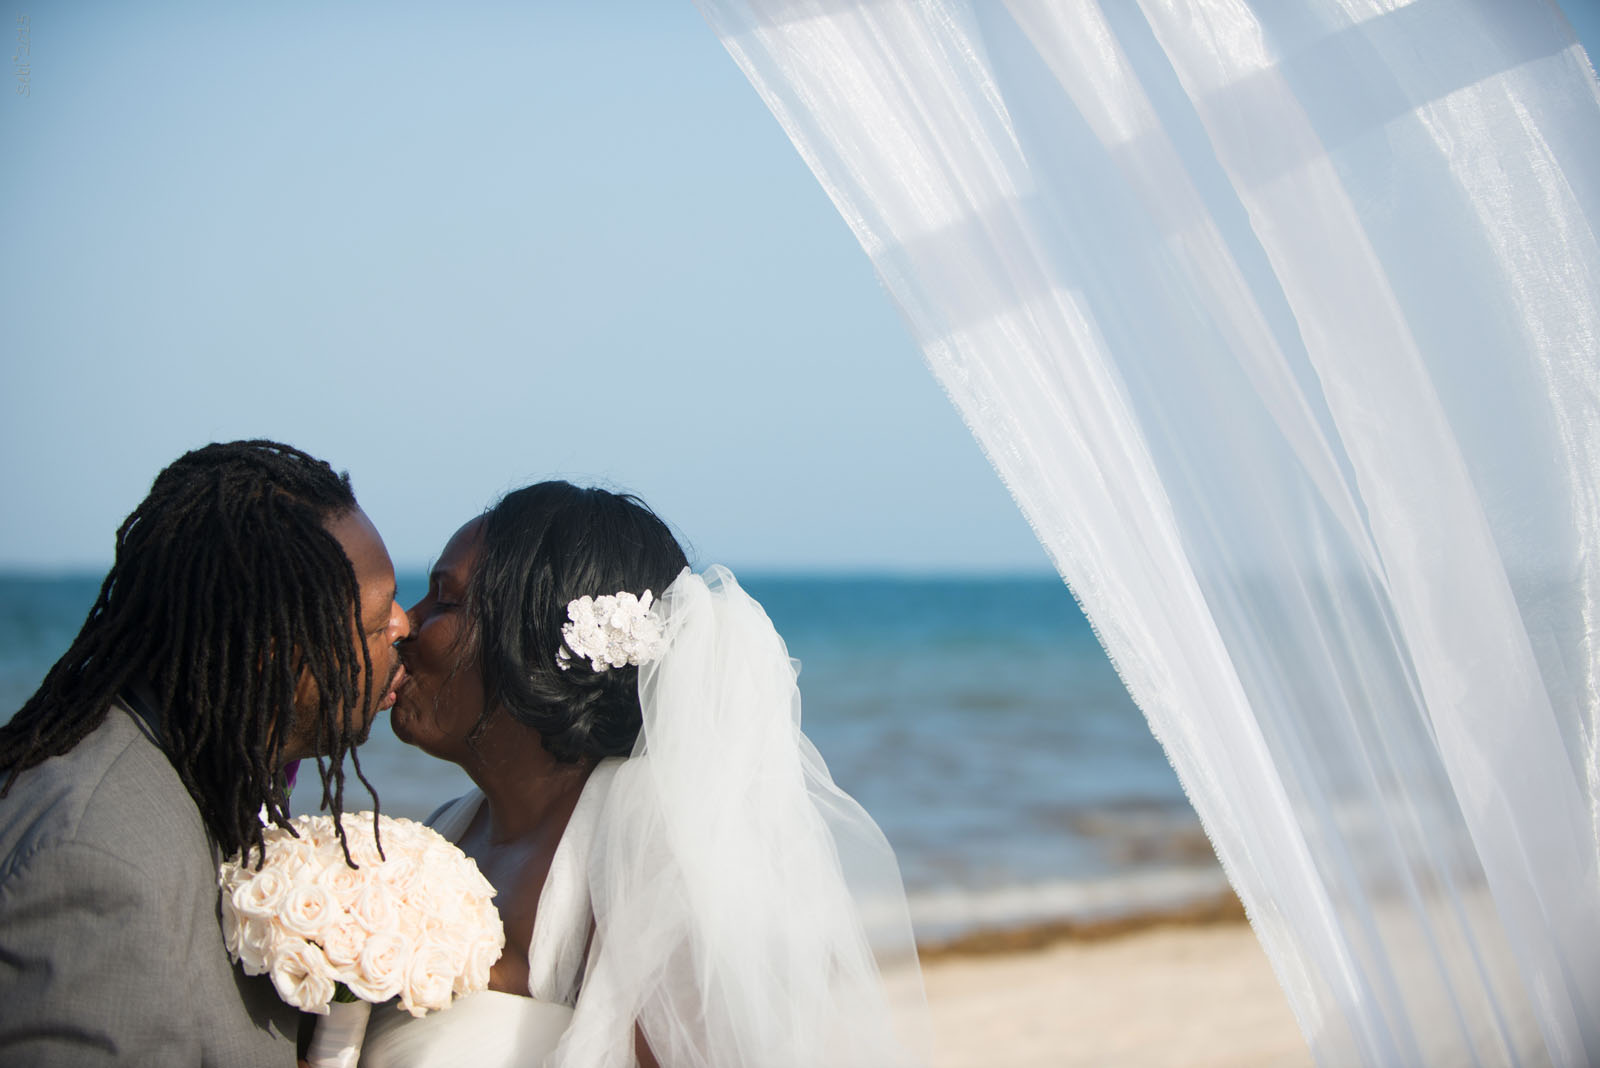 Best destination wedding locations chris and erica for Best destination wedding venues